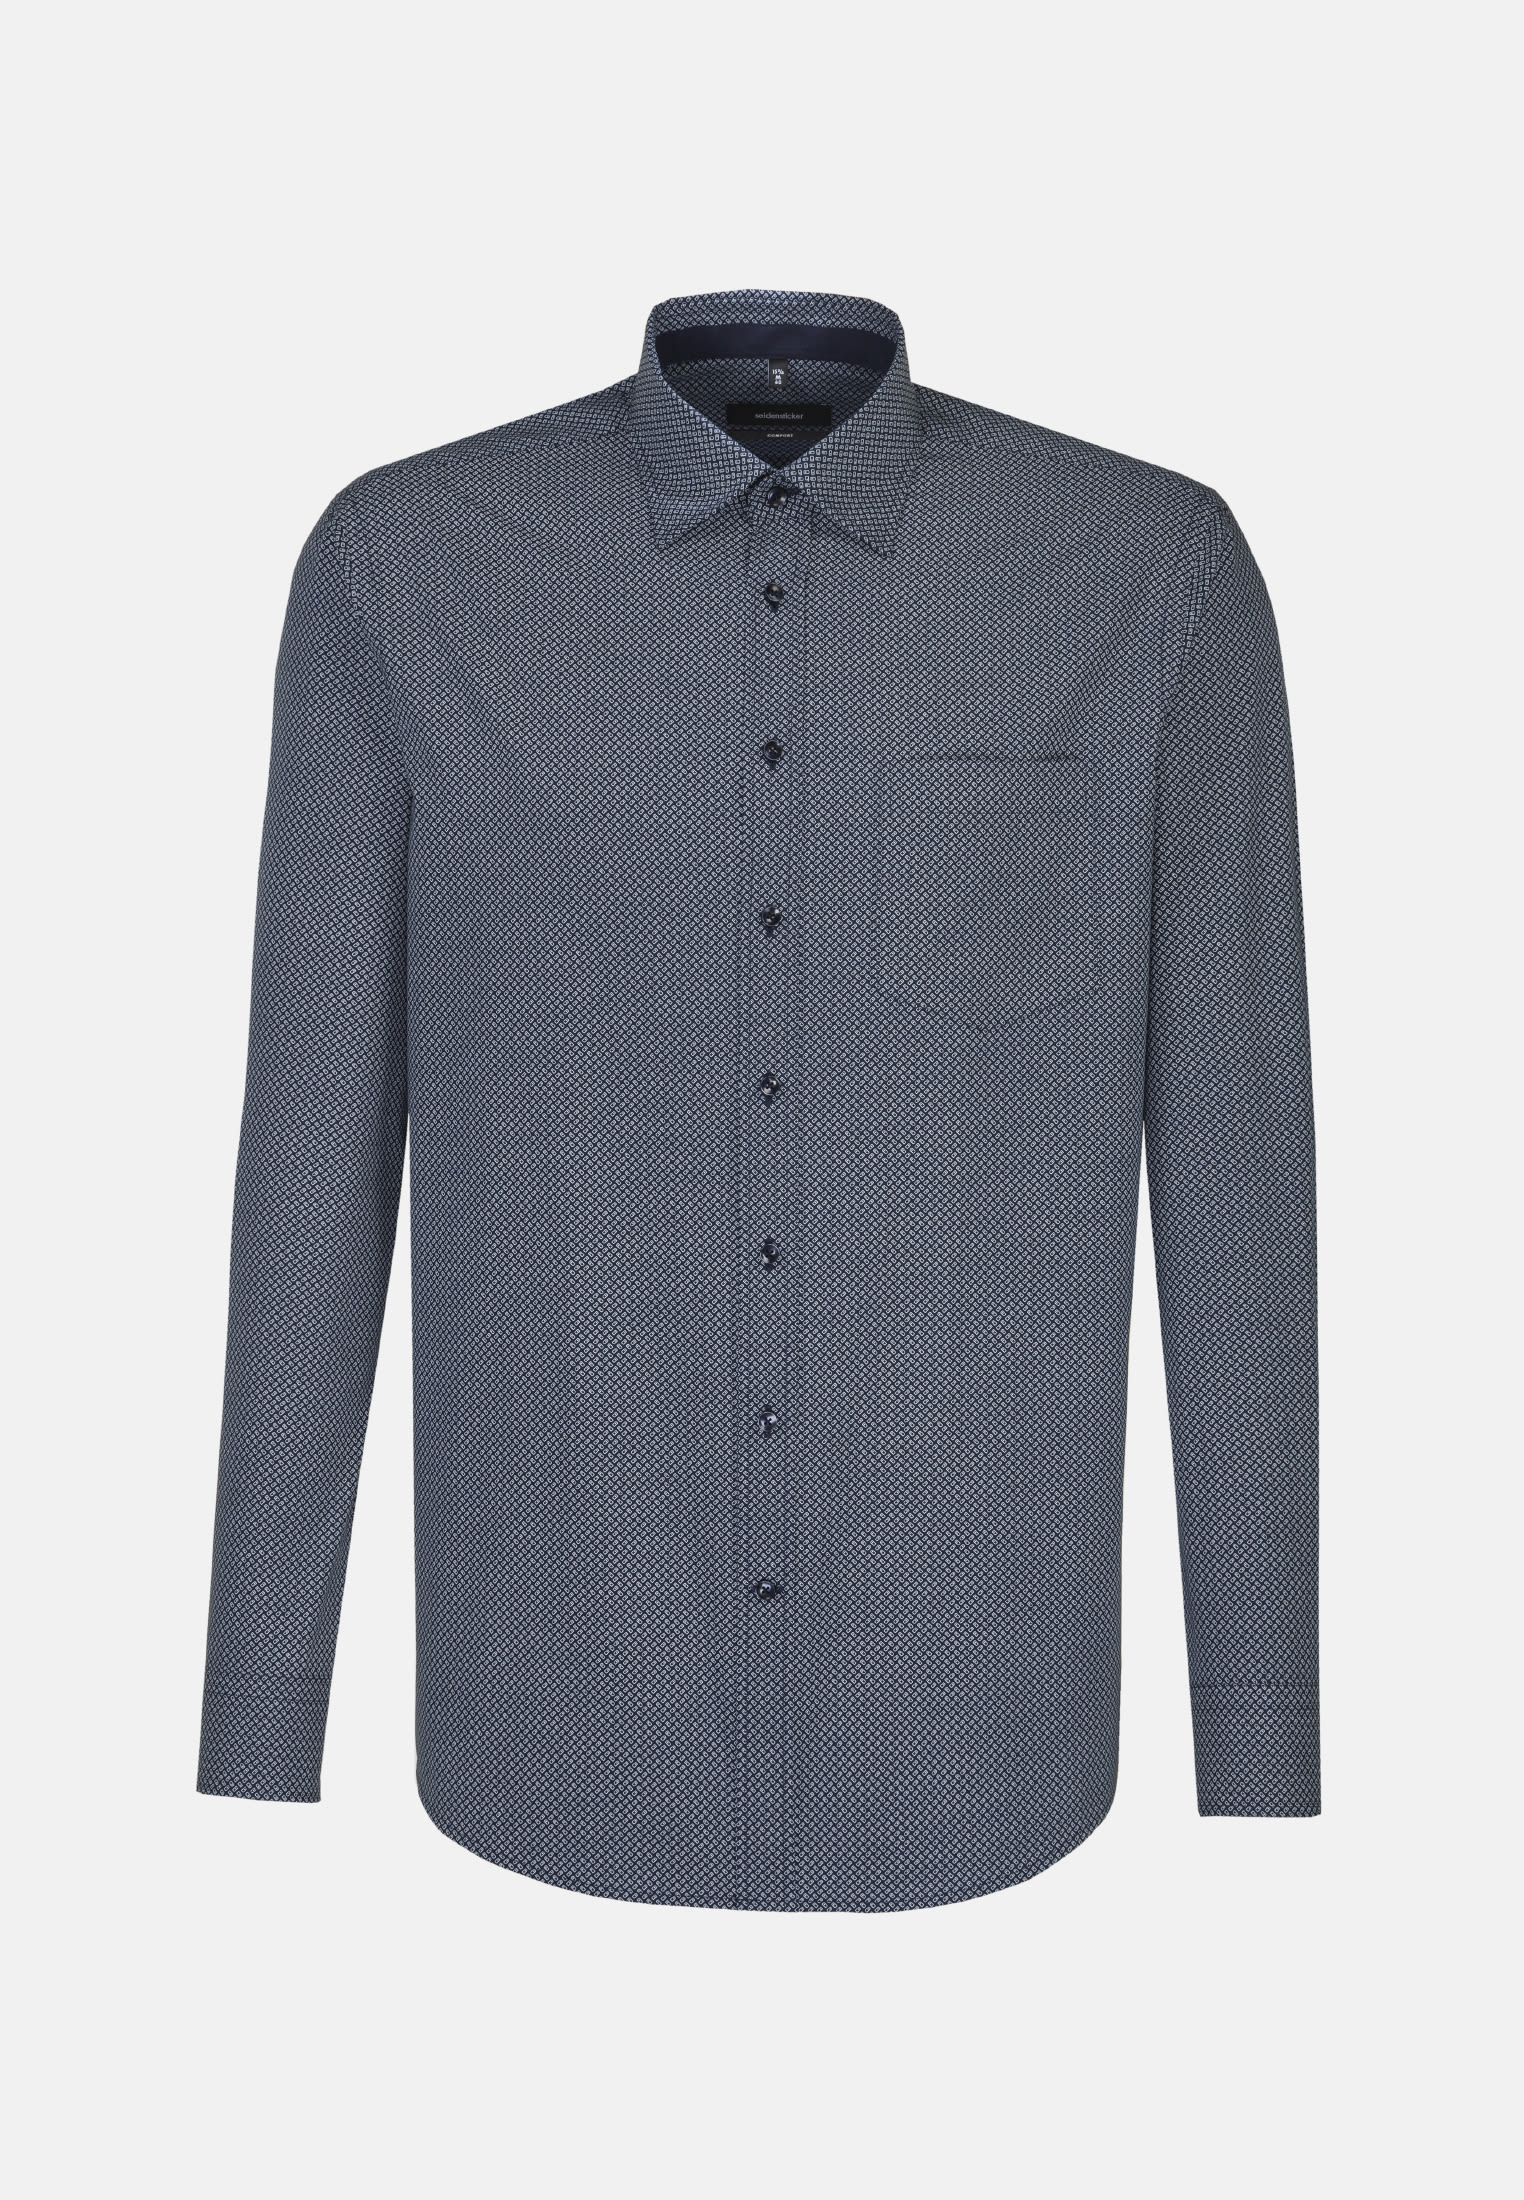 Bügelleichtes Popeline Business Hemd in Comfort mit Covered-Button-Down-Kragen in Mittelblau |  Seidensticker Onlineshop